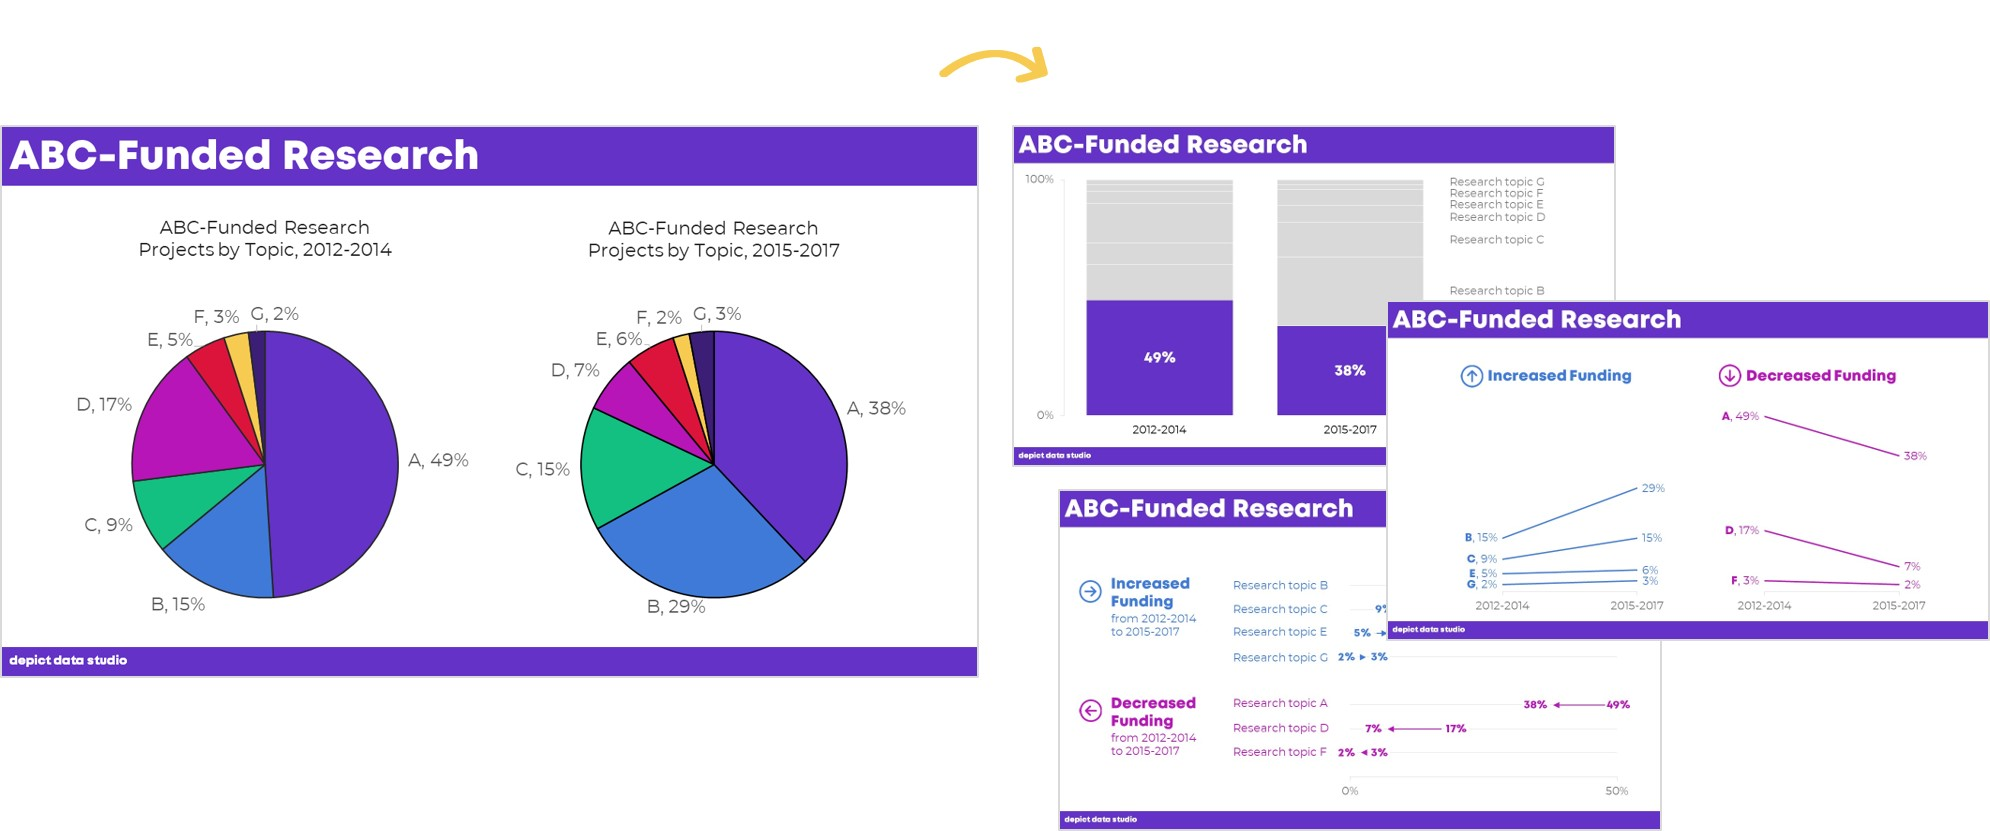 There are several ways to transform a pie chart. For example, you can use a stacked bar/column chart, a slope chart, or a dot plot.